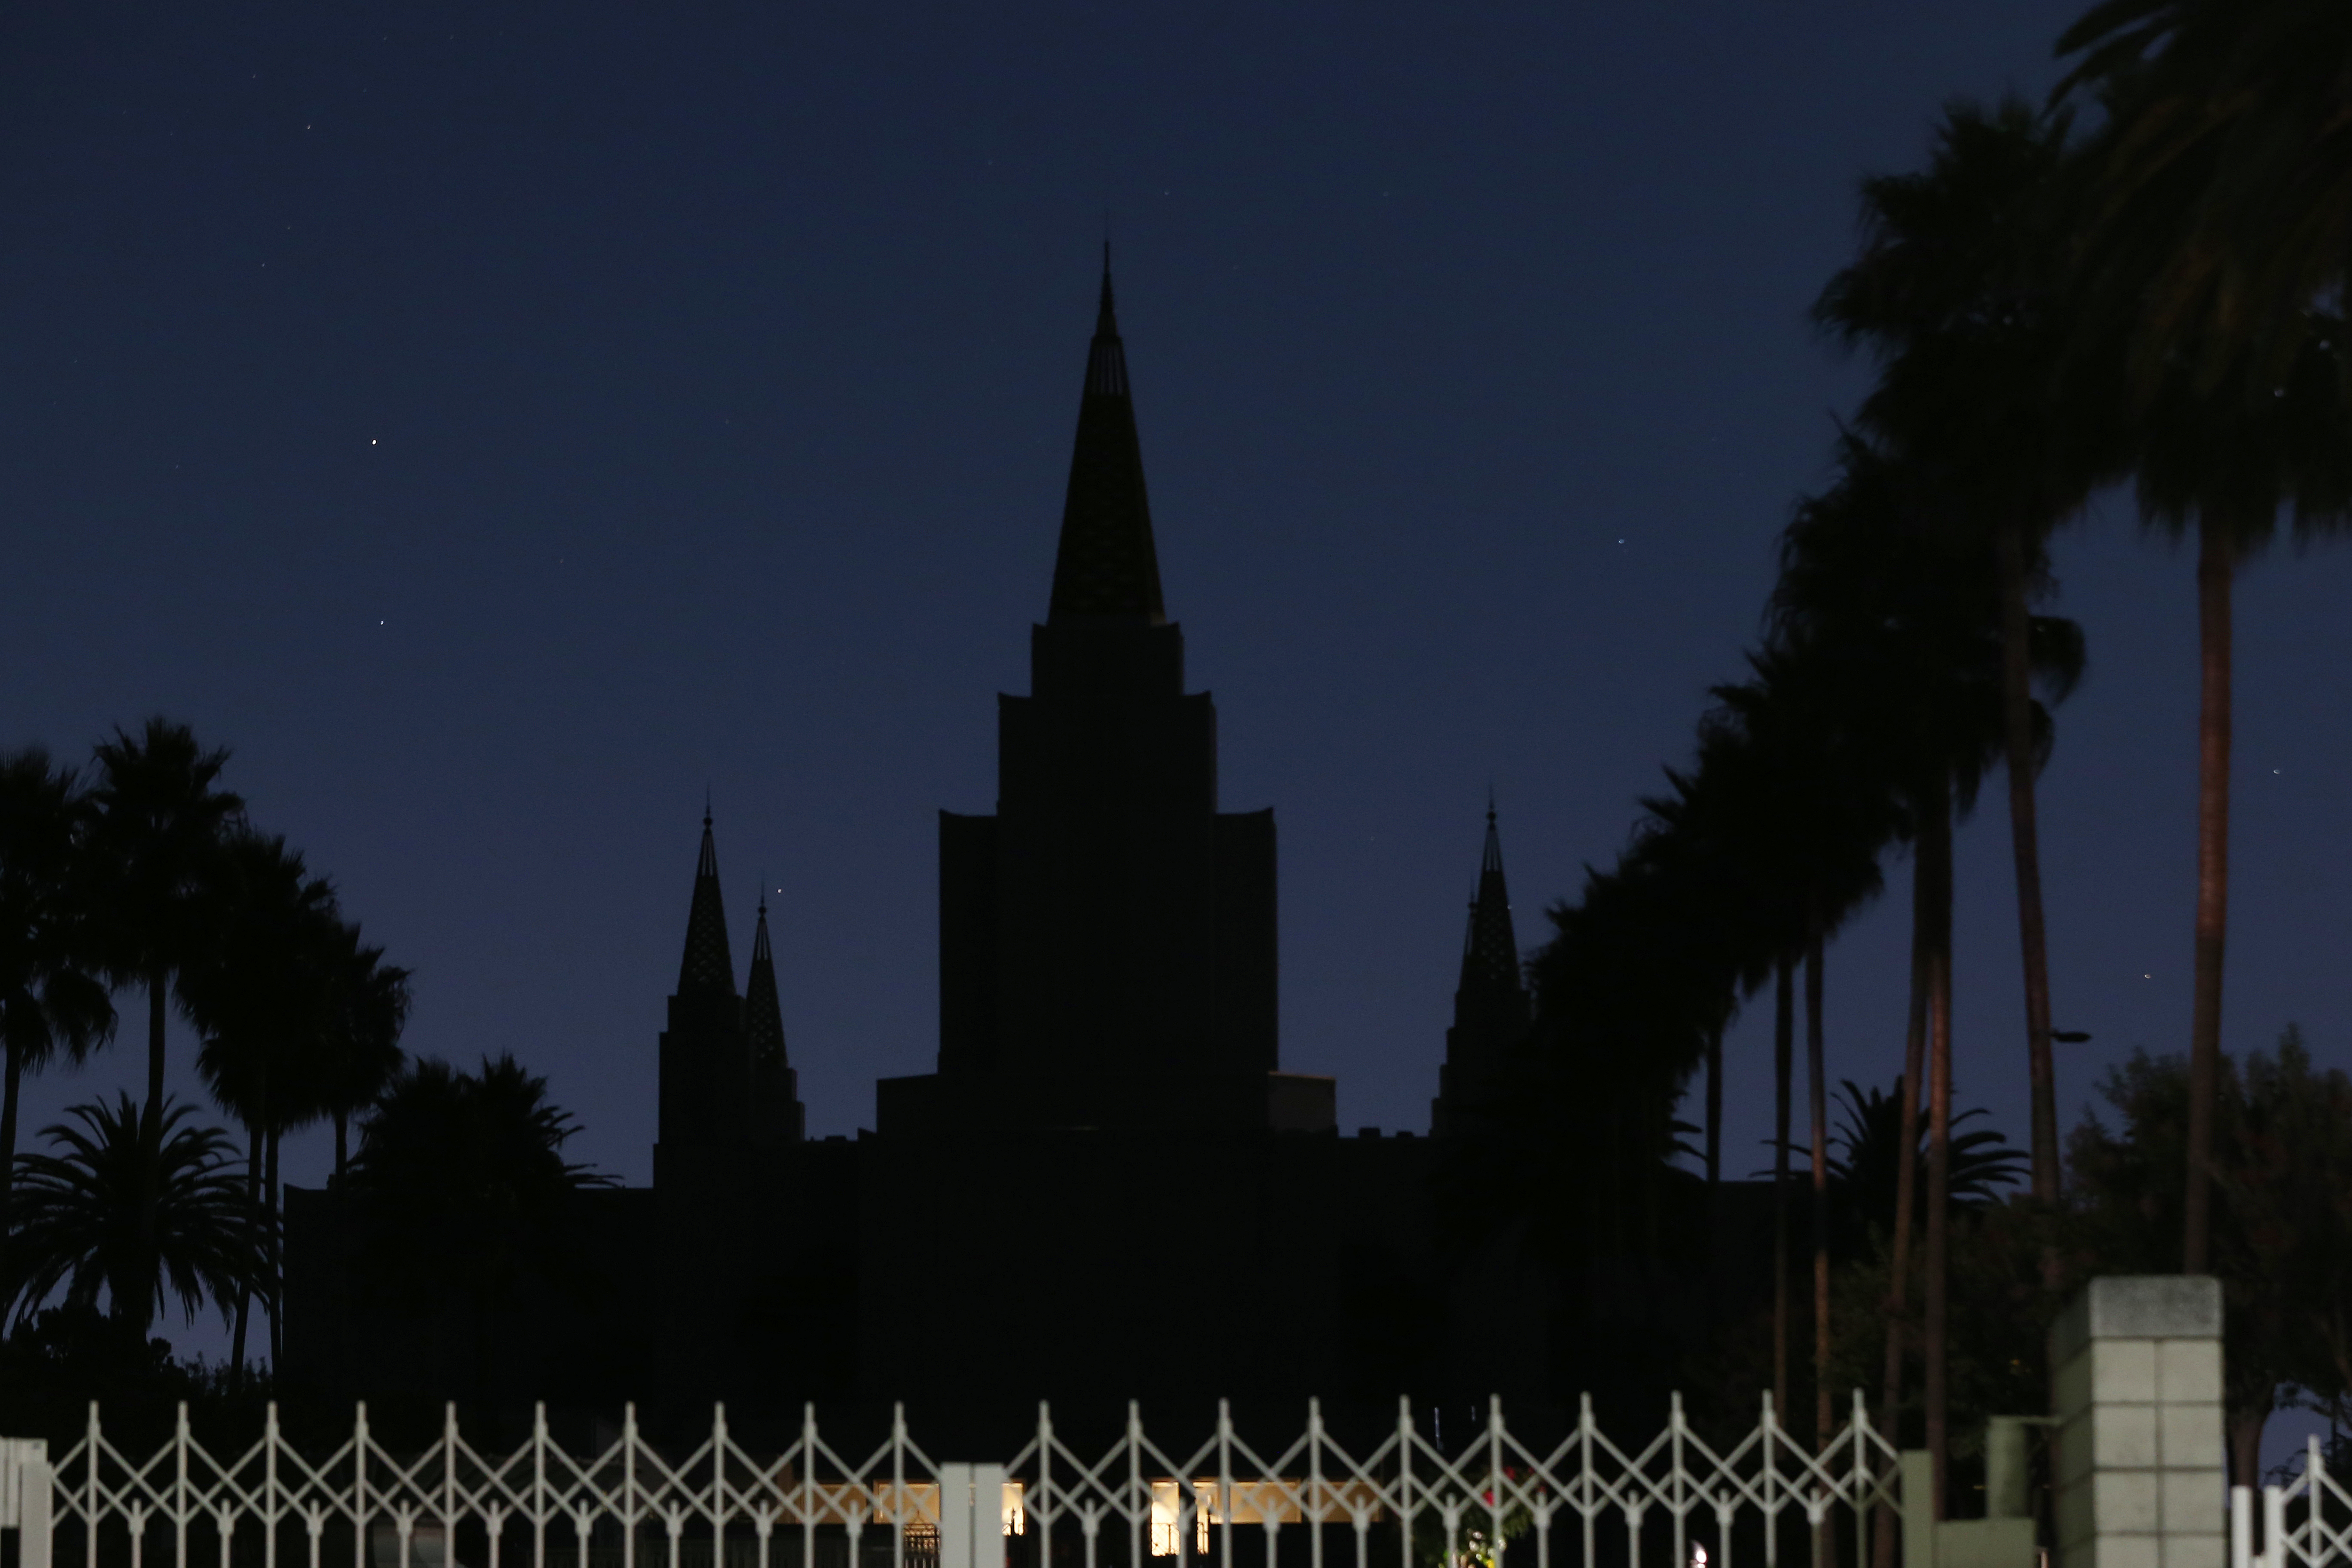 The dark silhouette of an Oakland building with tall spires, set against a twilight sky.